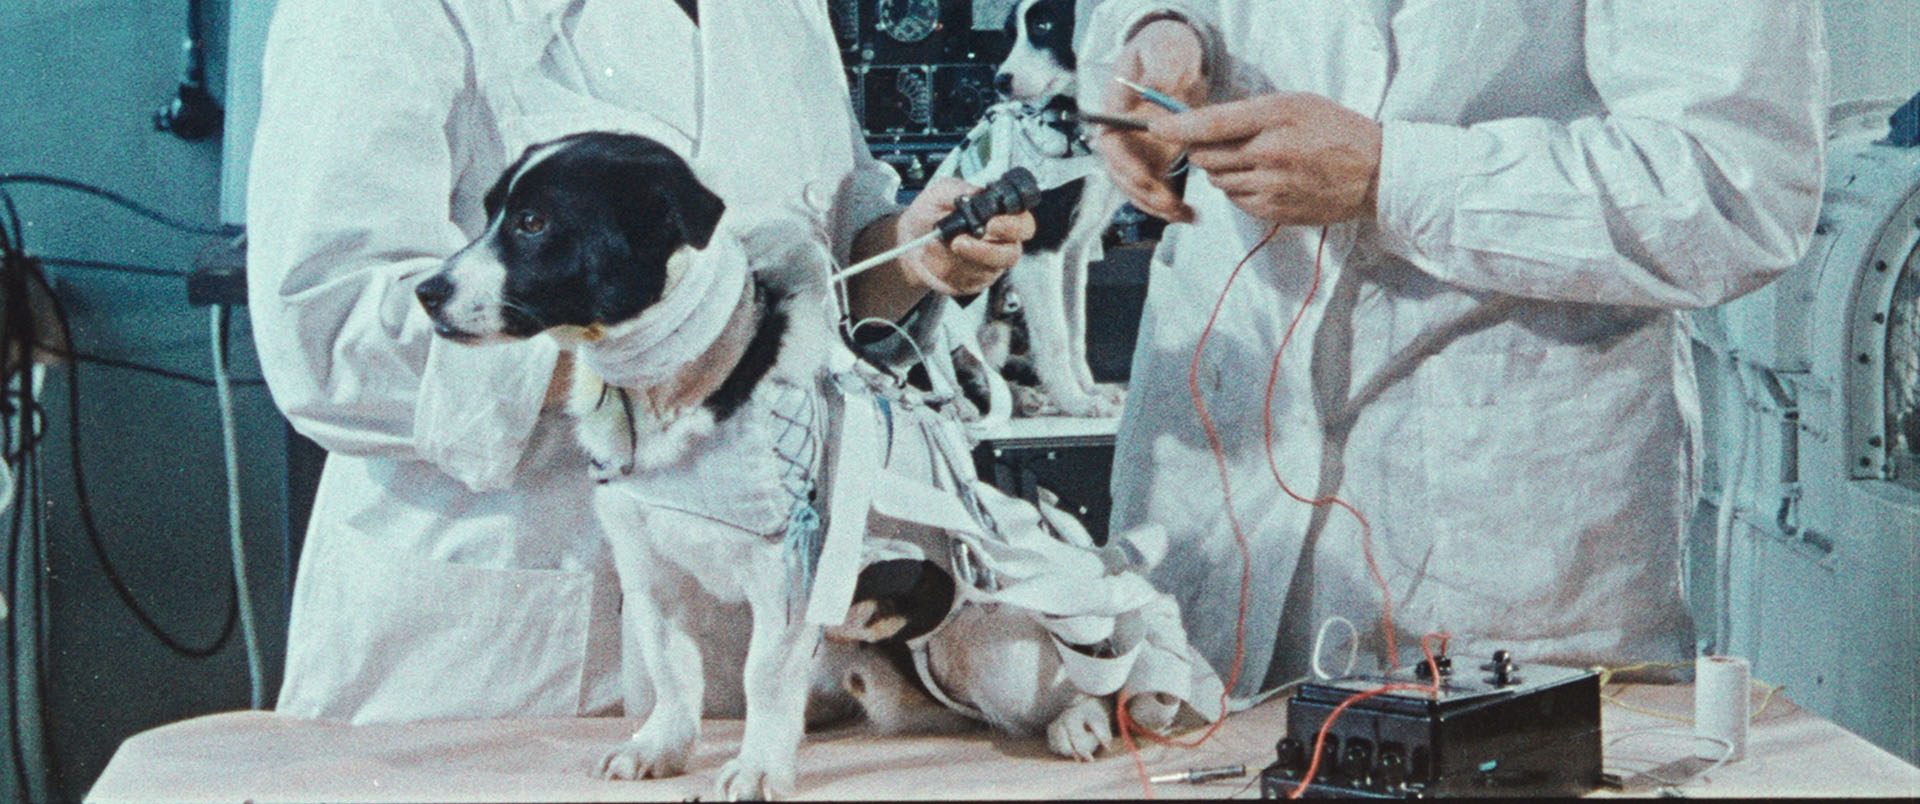 SpaceDogs_Still_02_web